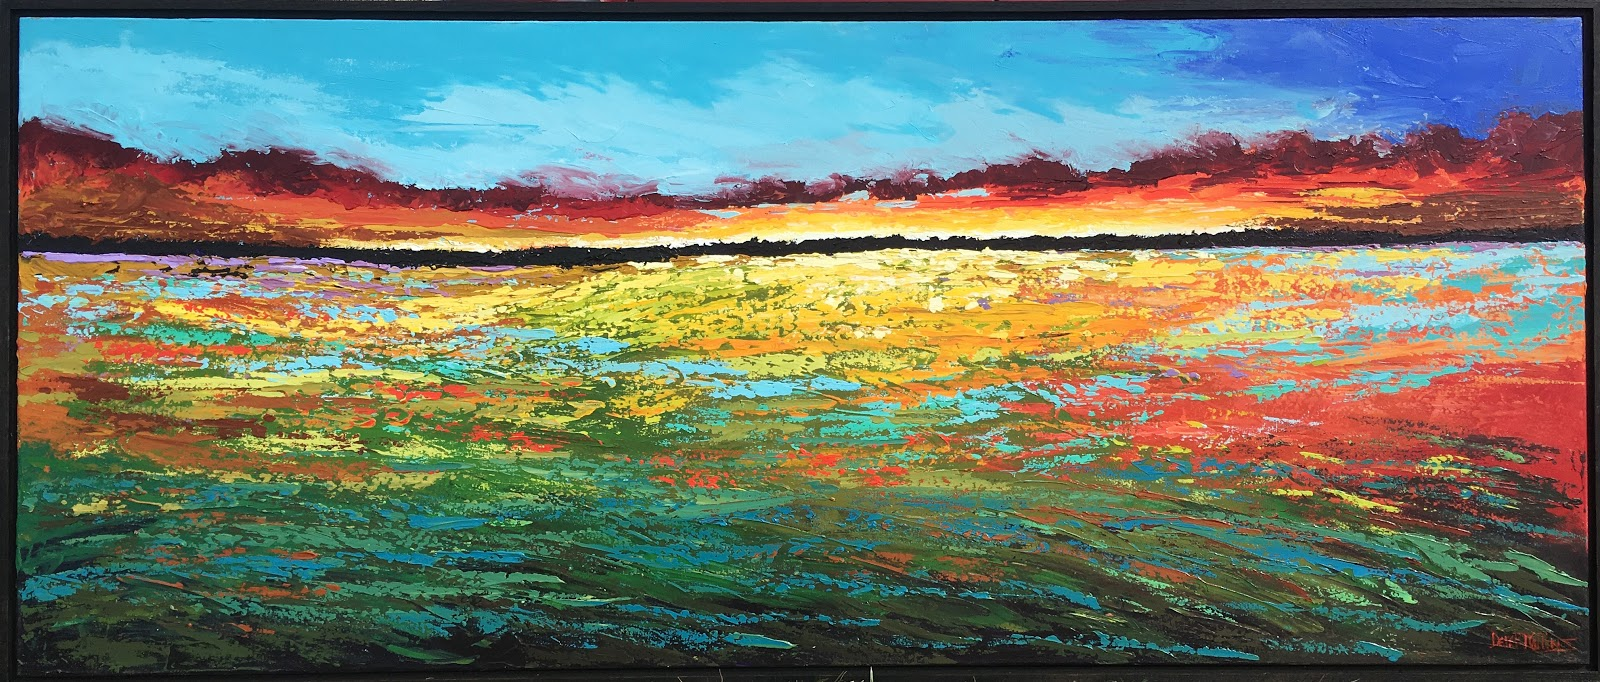 acrylic abstract impressionist sunset landscape painting